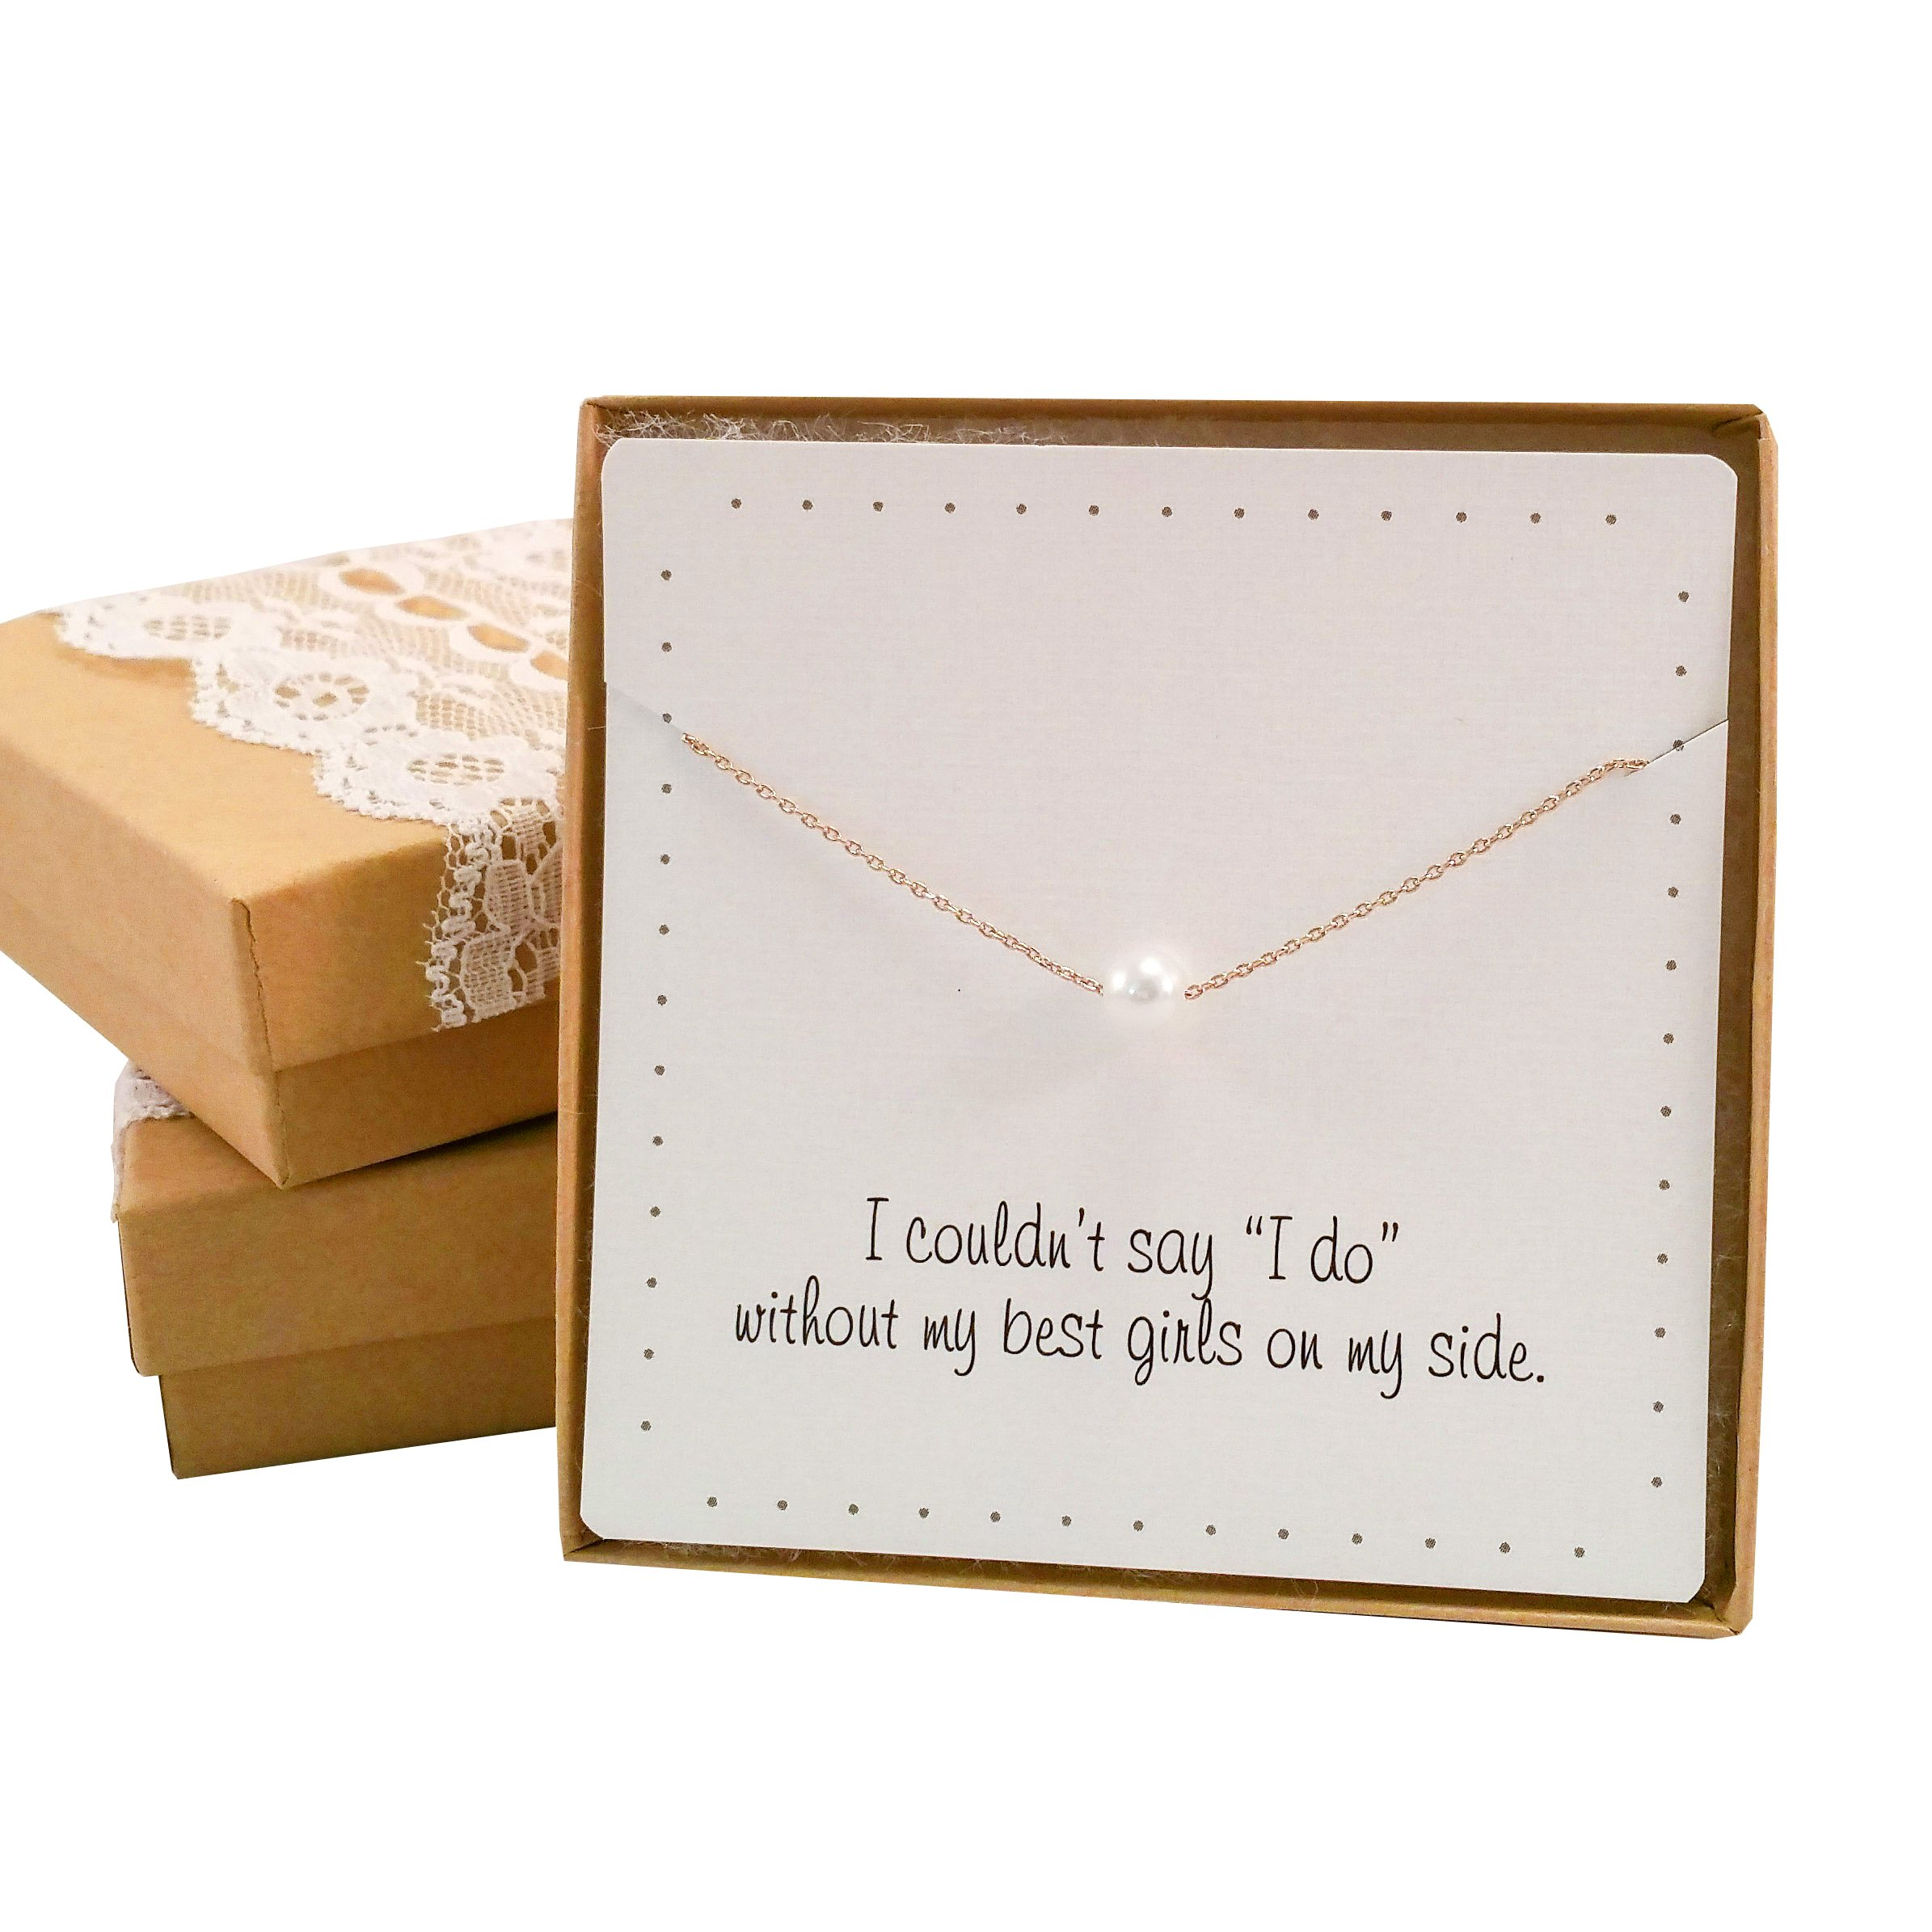 Bridesmaid Gifts- Pretty Single Floating Bridal Pearl Necklace, Gold Color, Set of 6